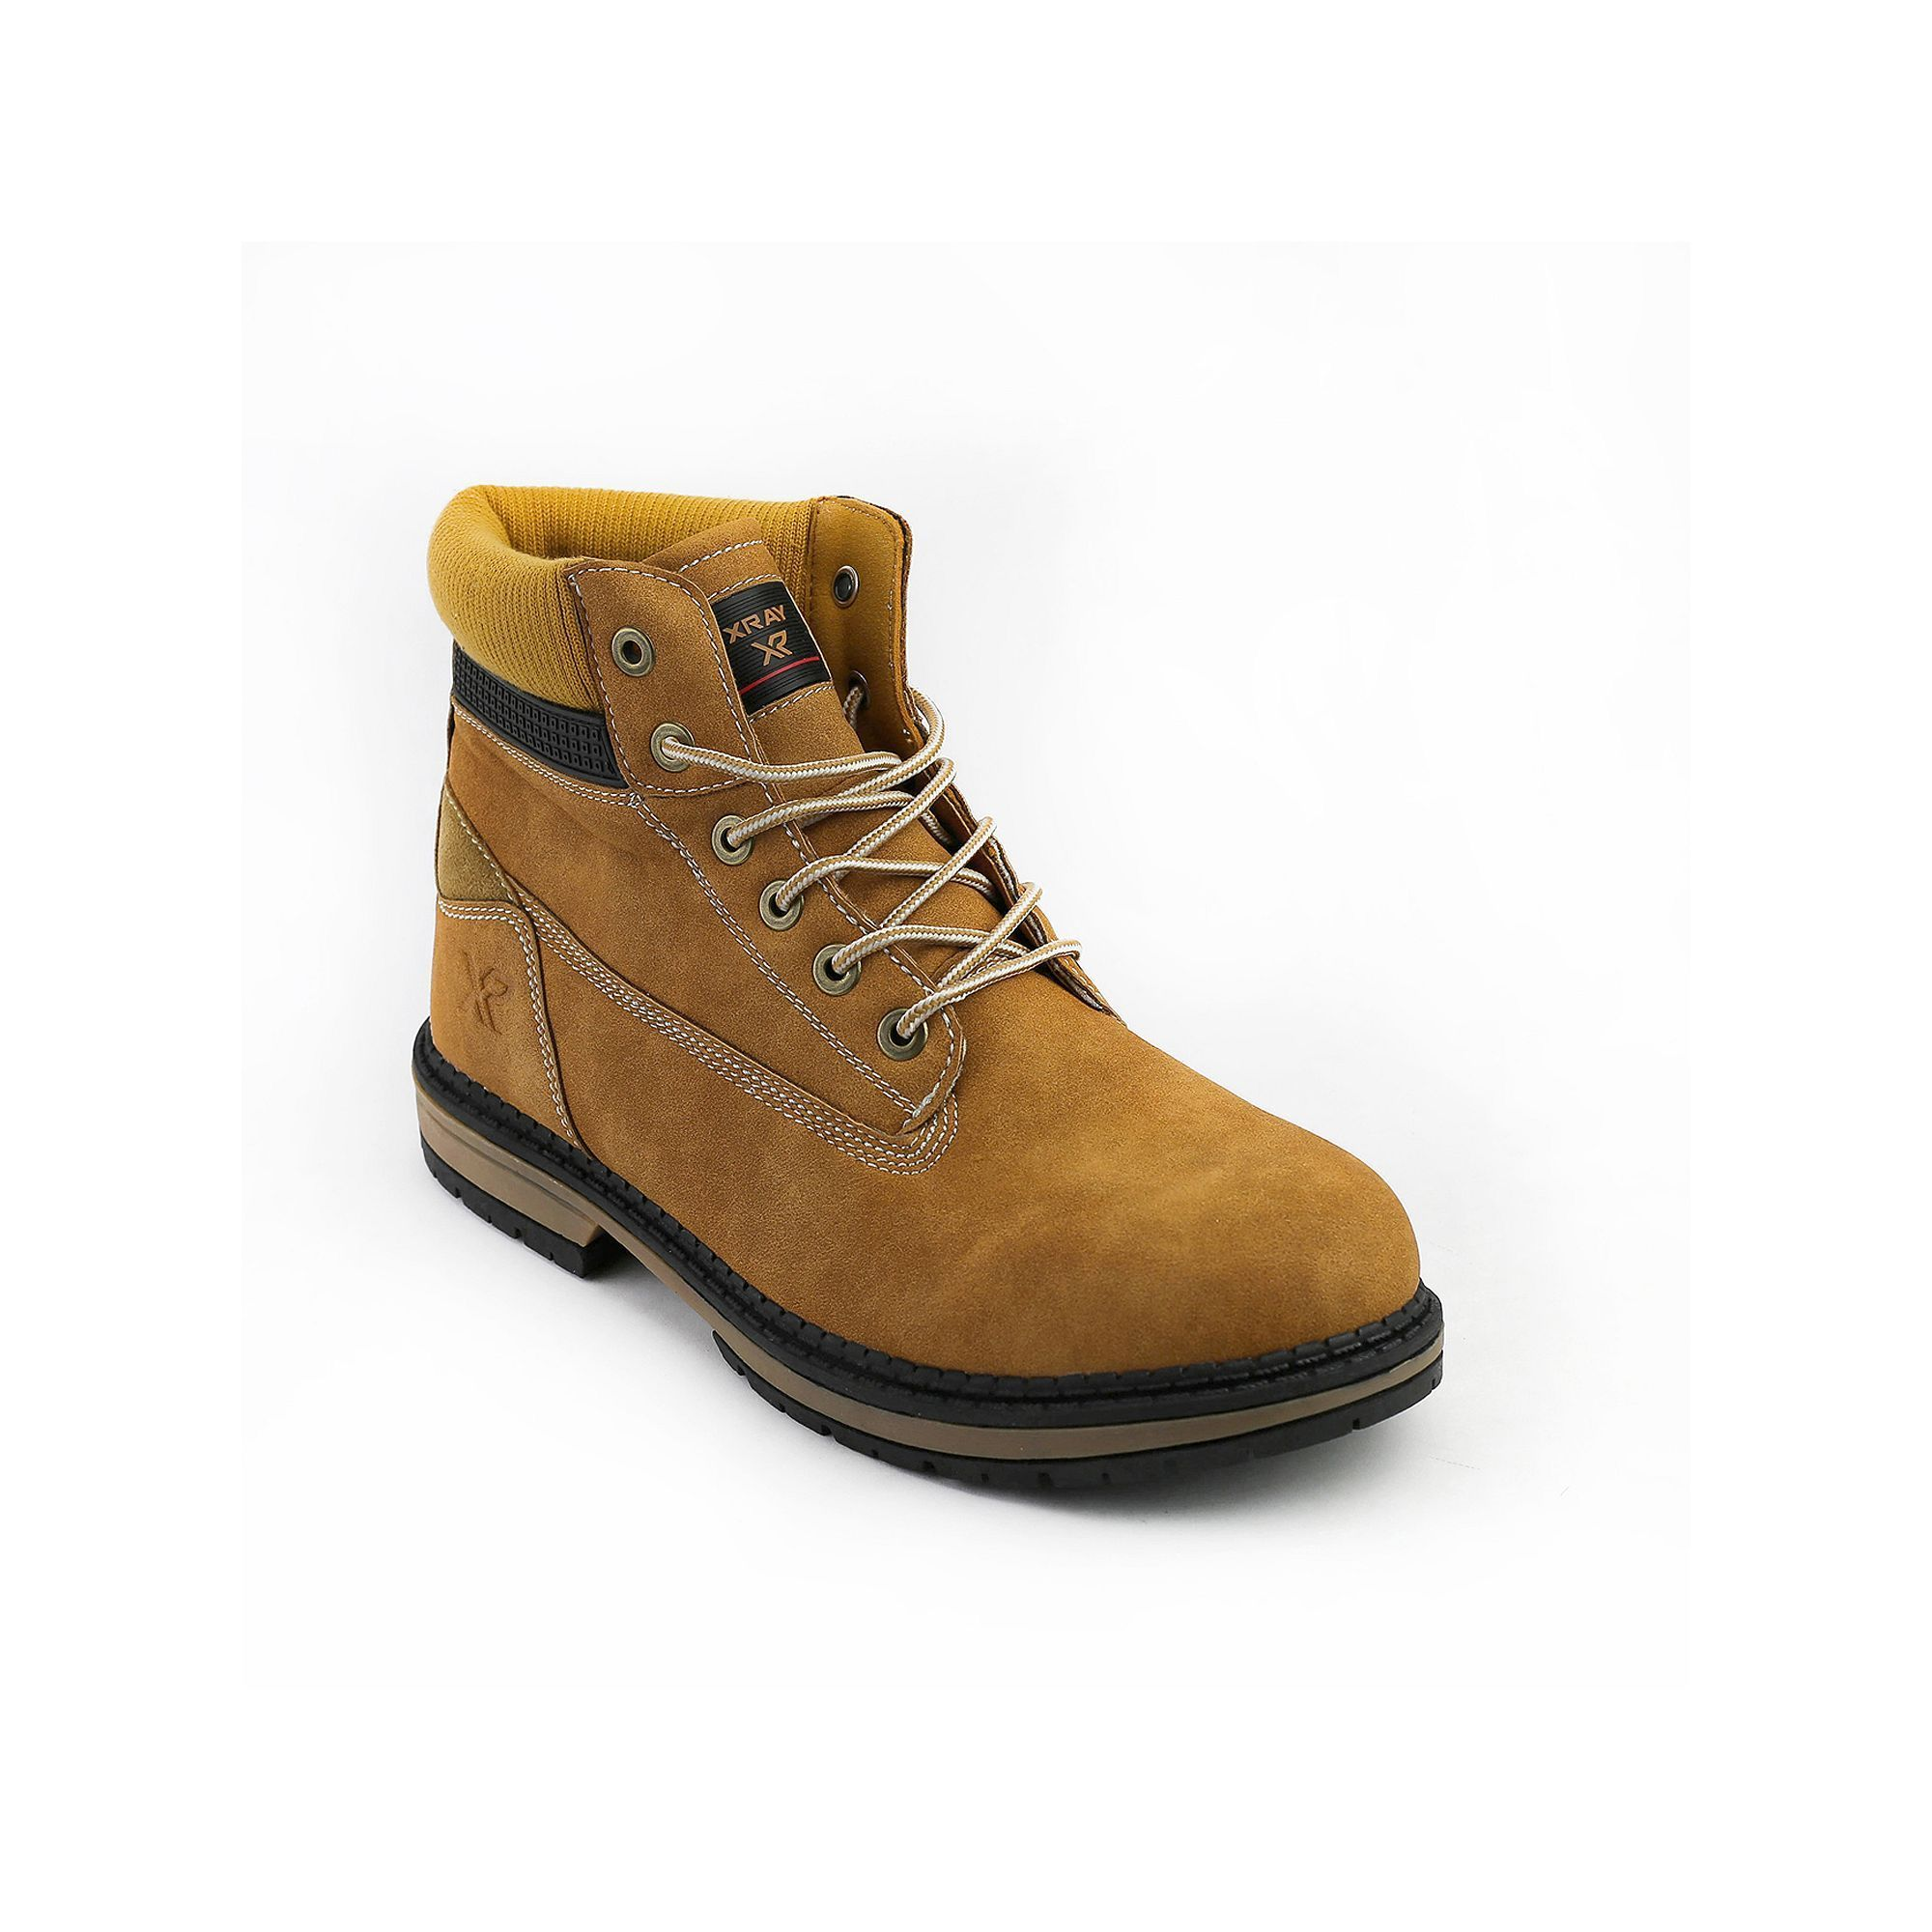 XRay Fullman Men's Ankle Boots | Mens ankle boots, Boots